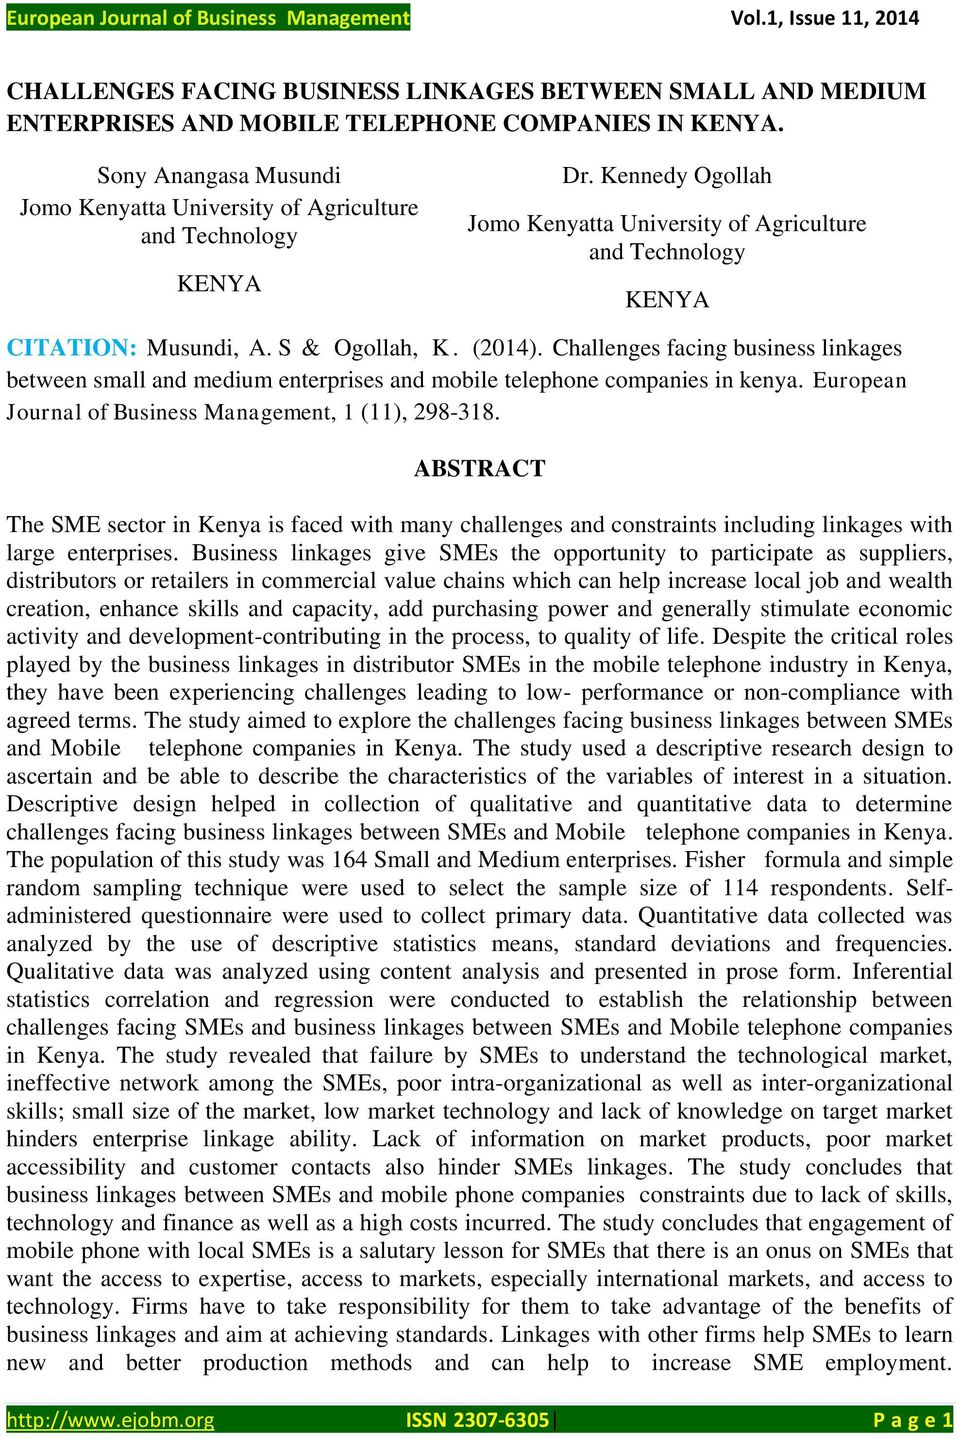 Challenges facing business linkages between small and medium enterprises and mobile telephone companies in kenya. European Journal of Business Management, 1 (11), 298-318.